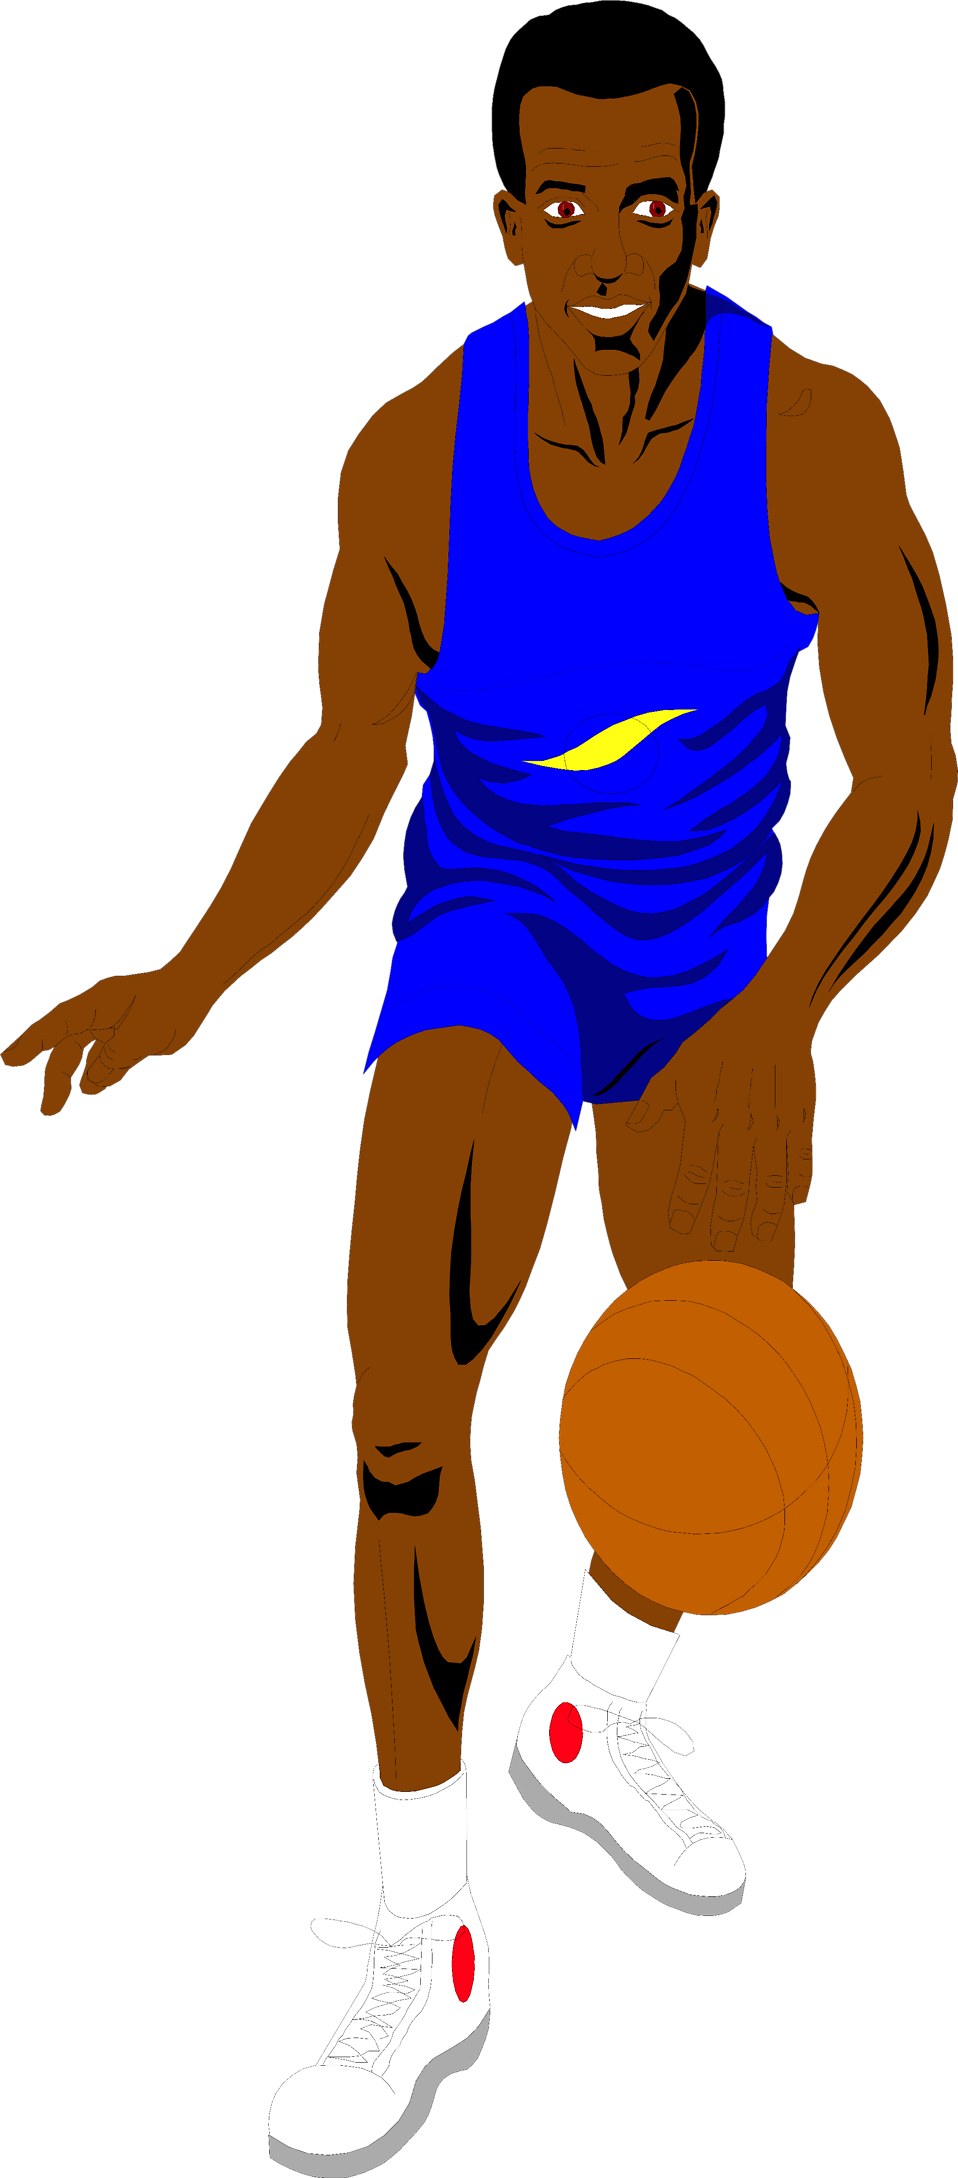 Clipart basketball player graphic free download Basketball | Free Stock Photo | Illustration of an African American ... graphic free download